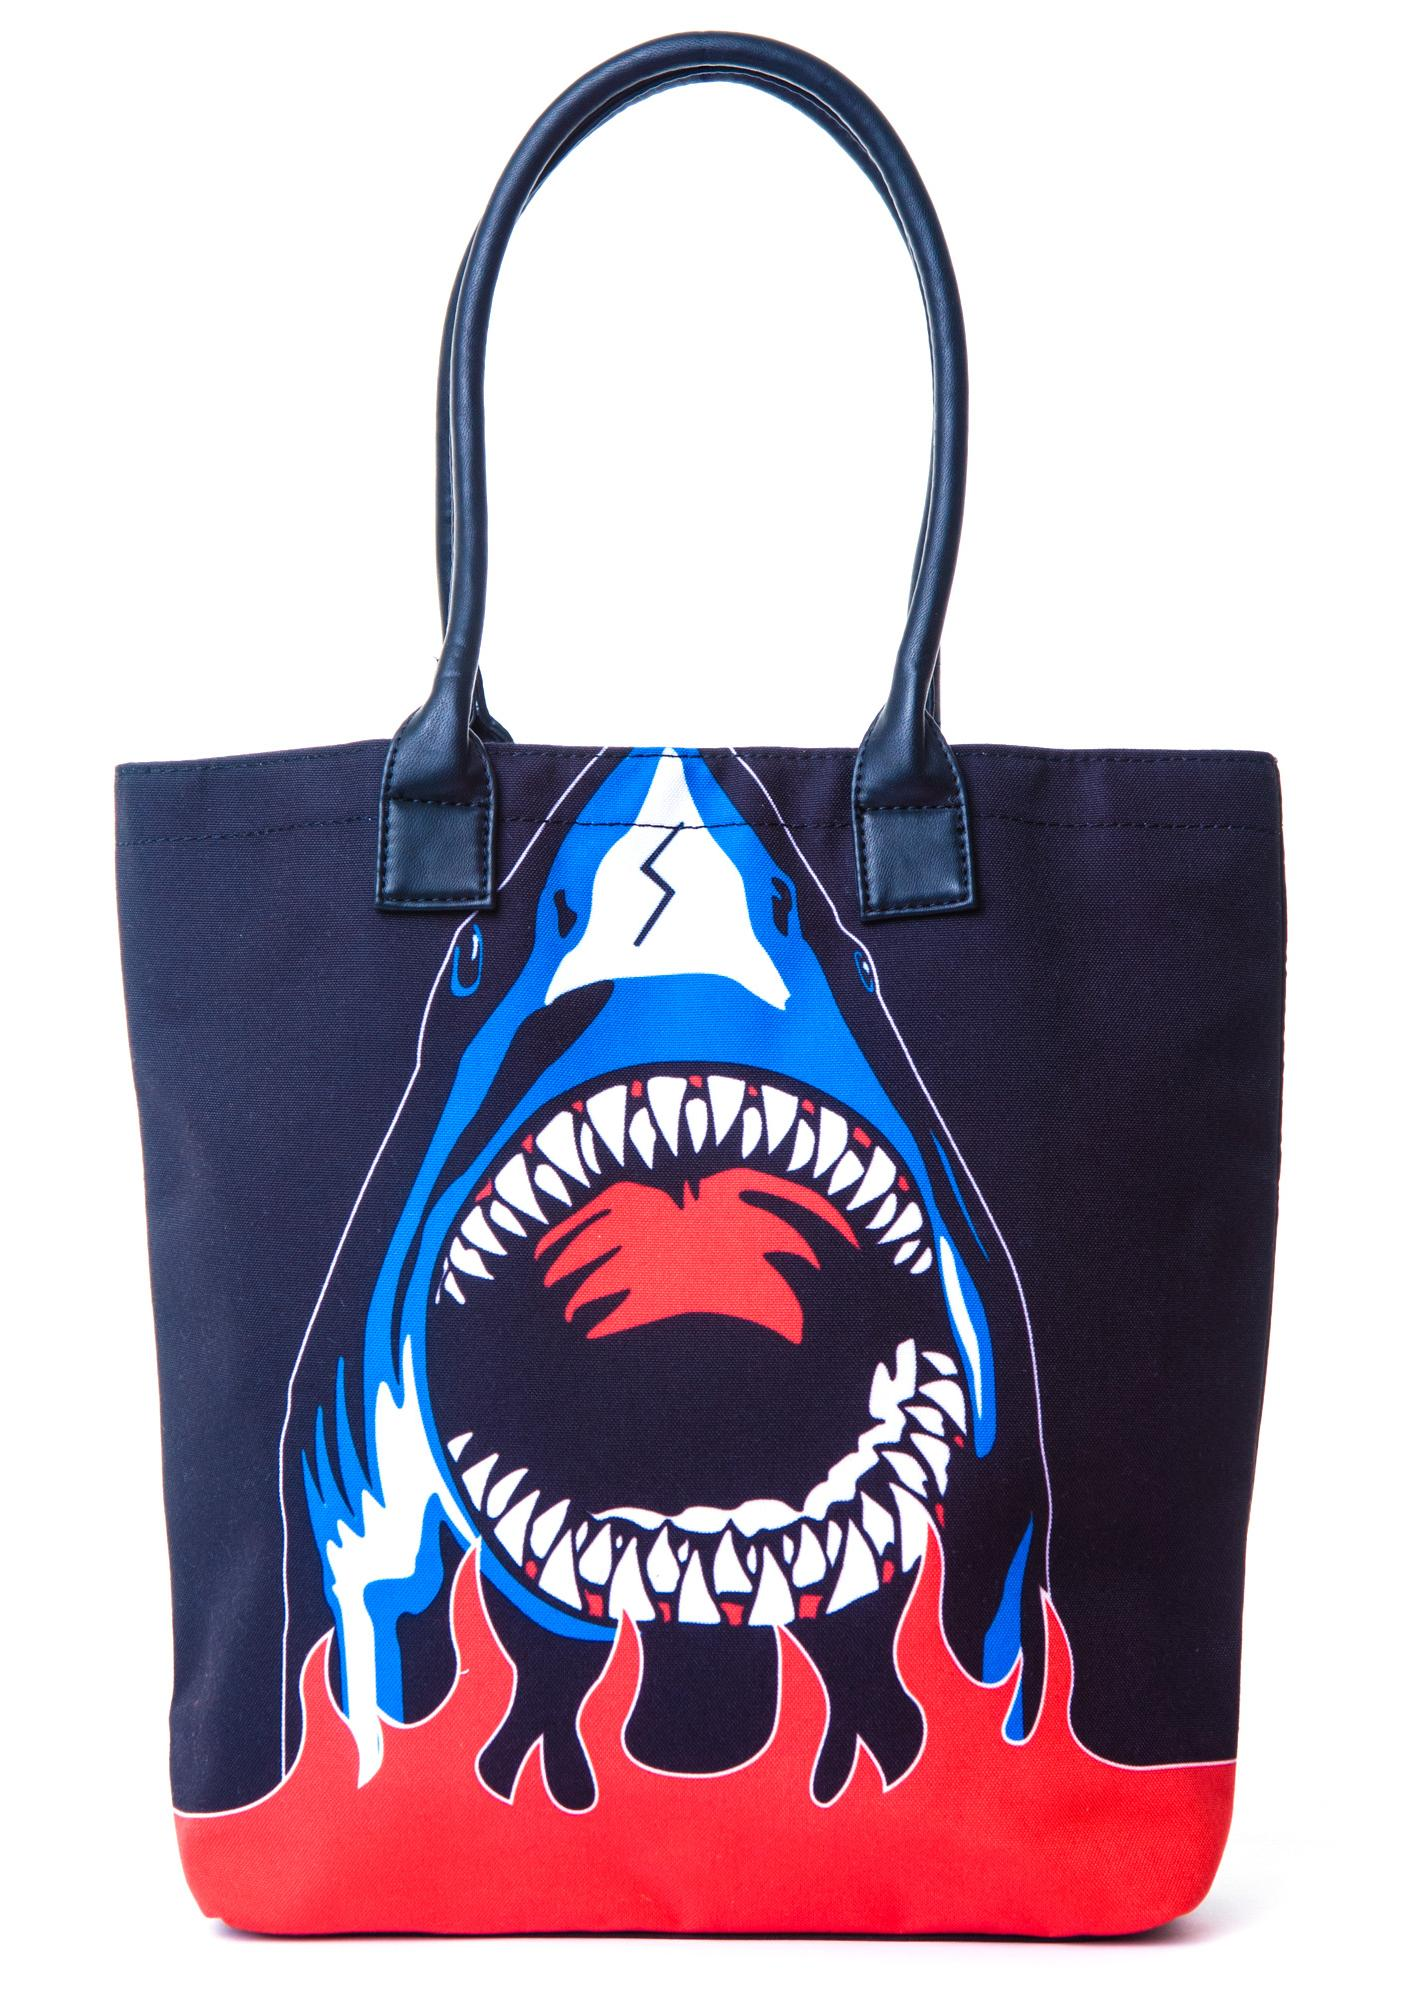 Halfman Romantics Shark Attack Tote Bag